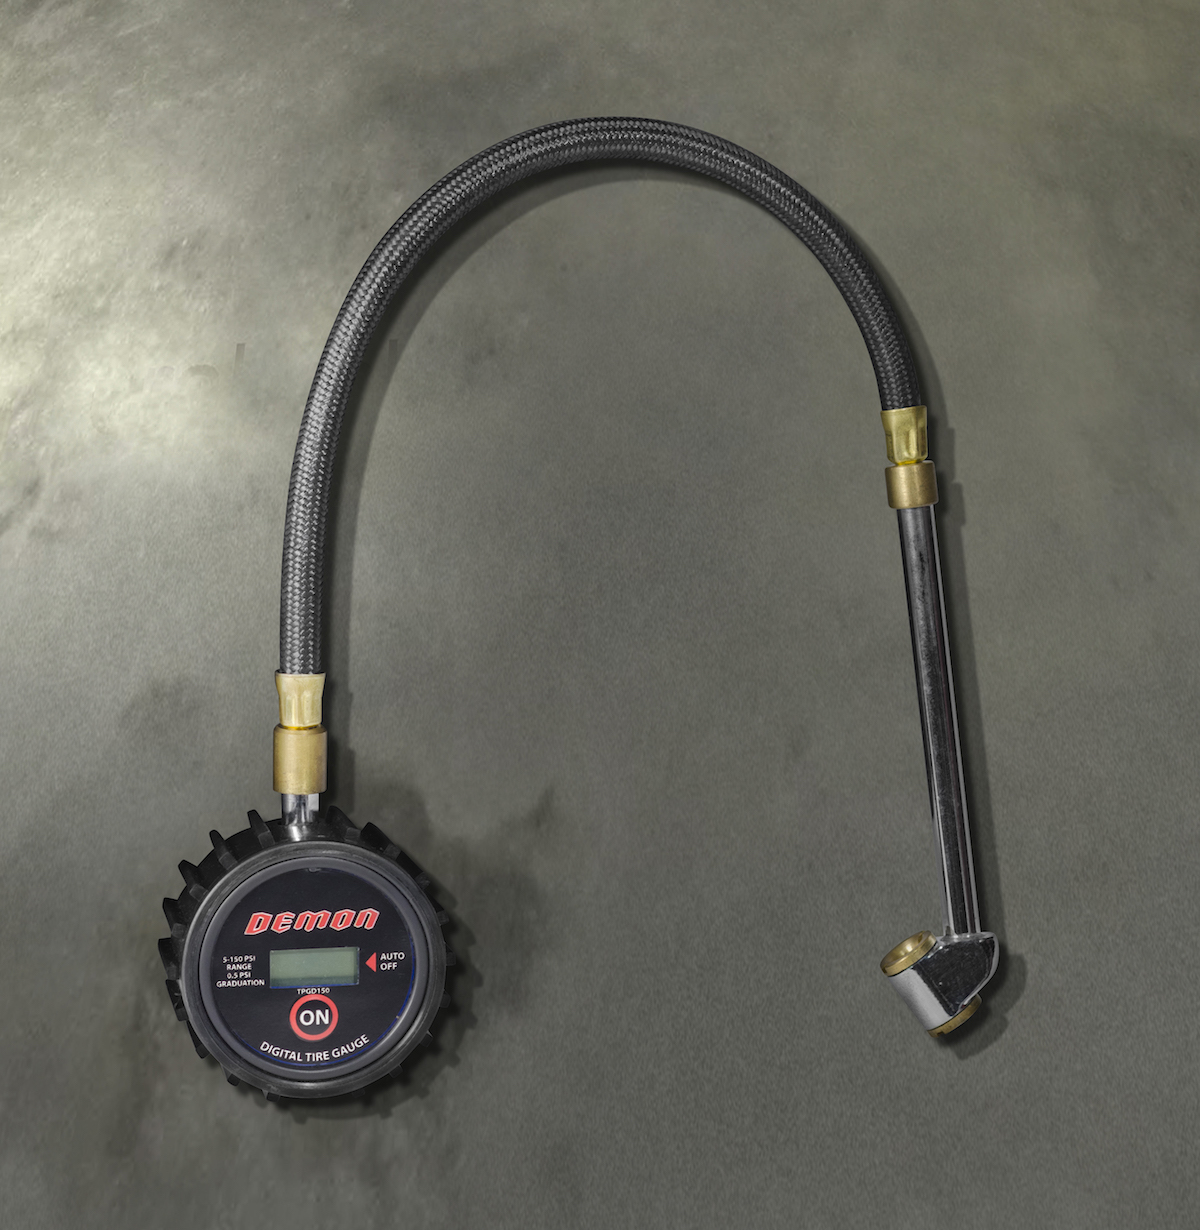 In collaboration with Dodge, Snap-on Business Solutions delivers what customers need to take the 2018 Dodge Challenger SRT Demon from the street to the drag strip and back again. This is a special, limited-production set of tools for the Dodge Challenger SRT Demon that includes this tire pressure gauge.